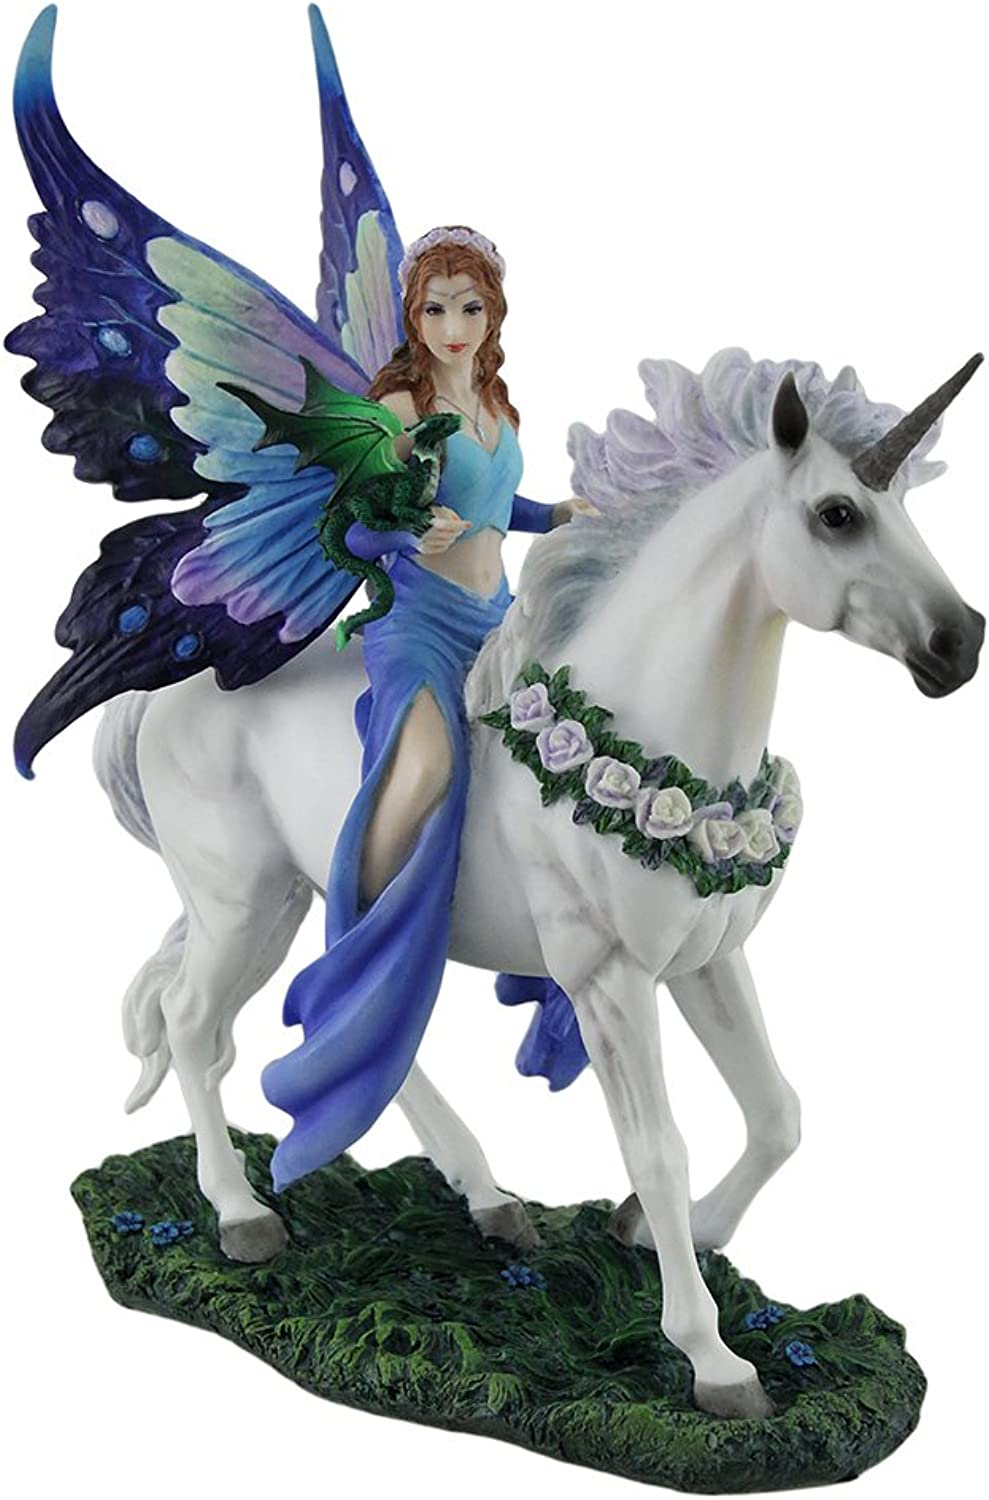 Veronese Polyresin Statues Anne Stokes Realm Of Enchantment bluee Fairy Statue 8 X 10.5 X 4 Inches bluee